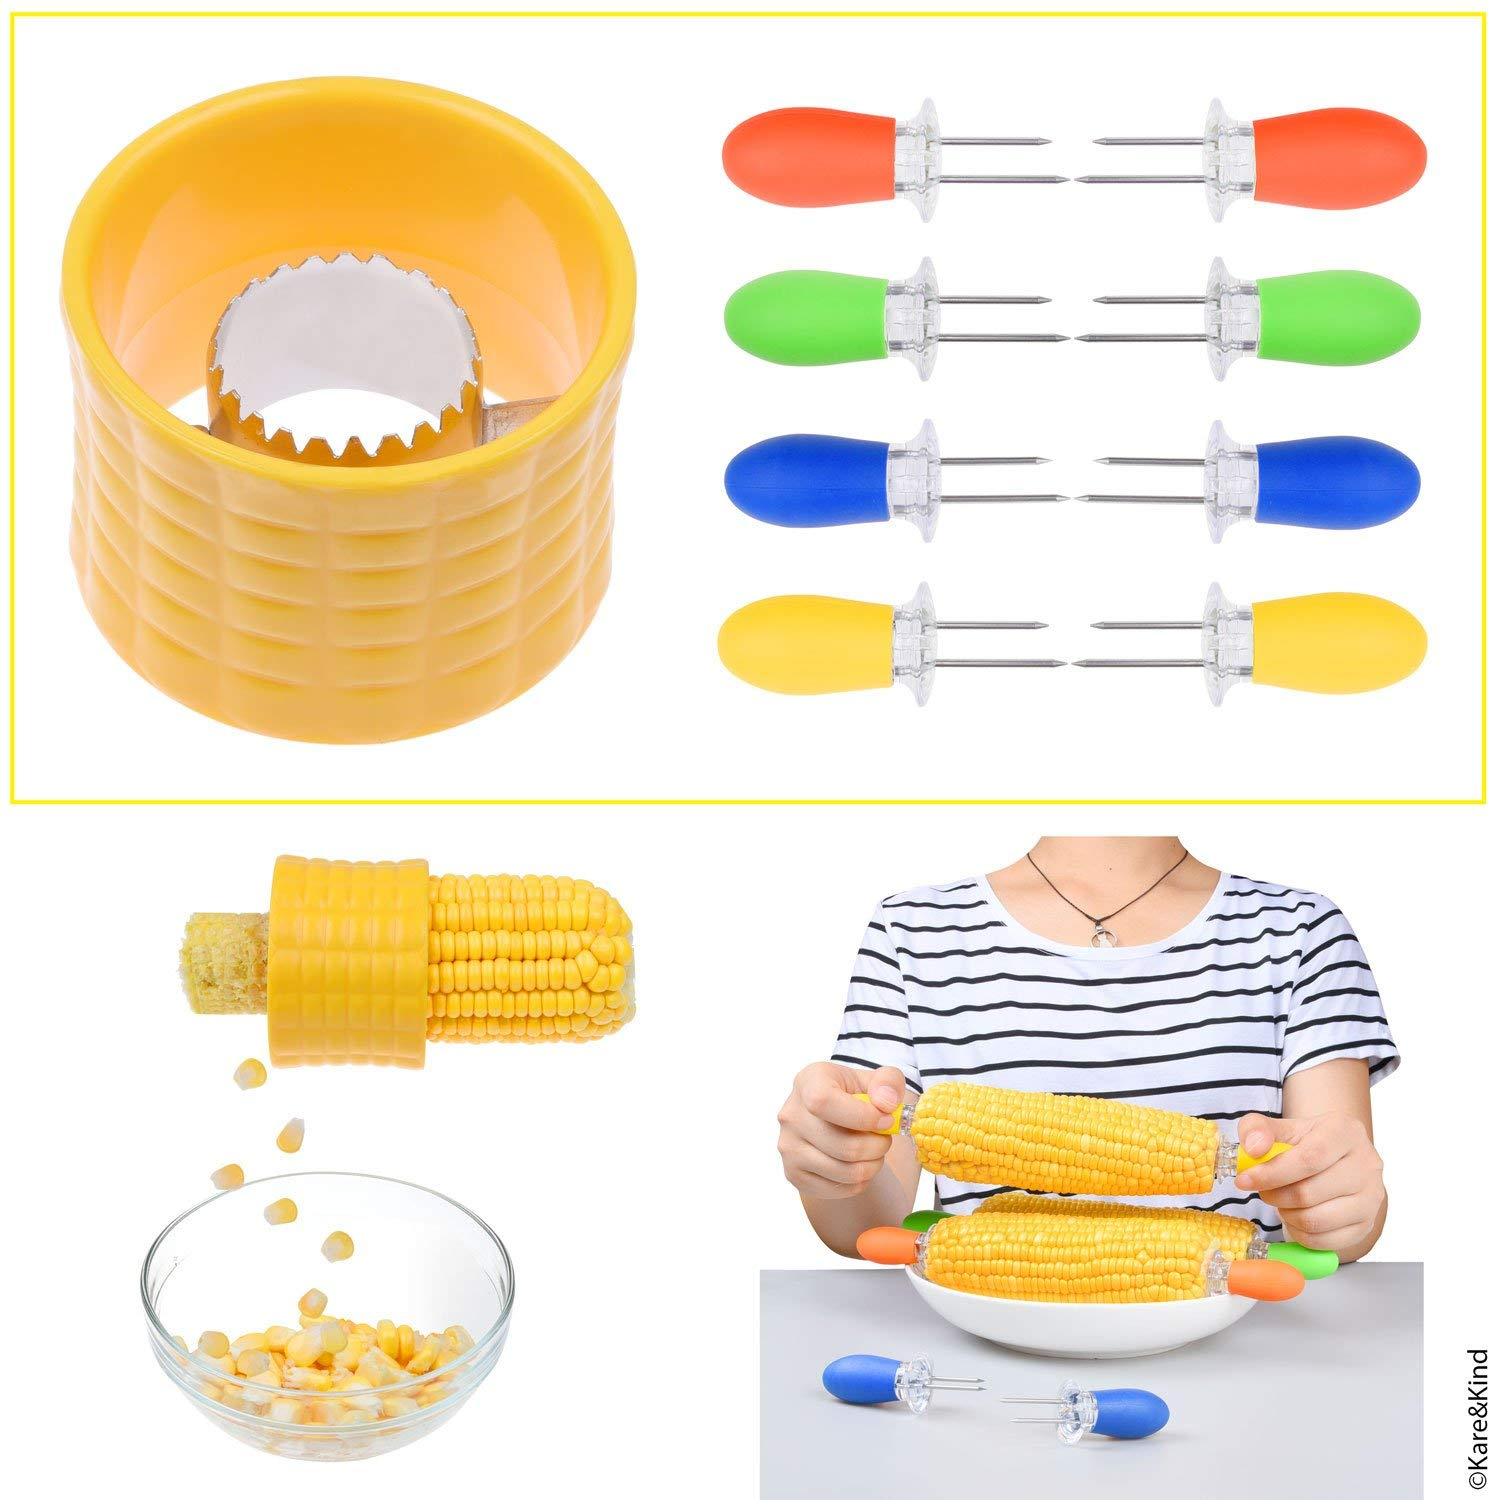 1x Corn Stripping Tool and 4X Corn Holder Pins - Easiest Way to Remove Kernels from Fresh Corn - Corn on The Cob Grips with Interlocking Design for Safety and Storage - Perfect for Salads, BBQ, etc.